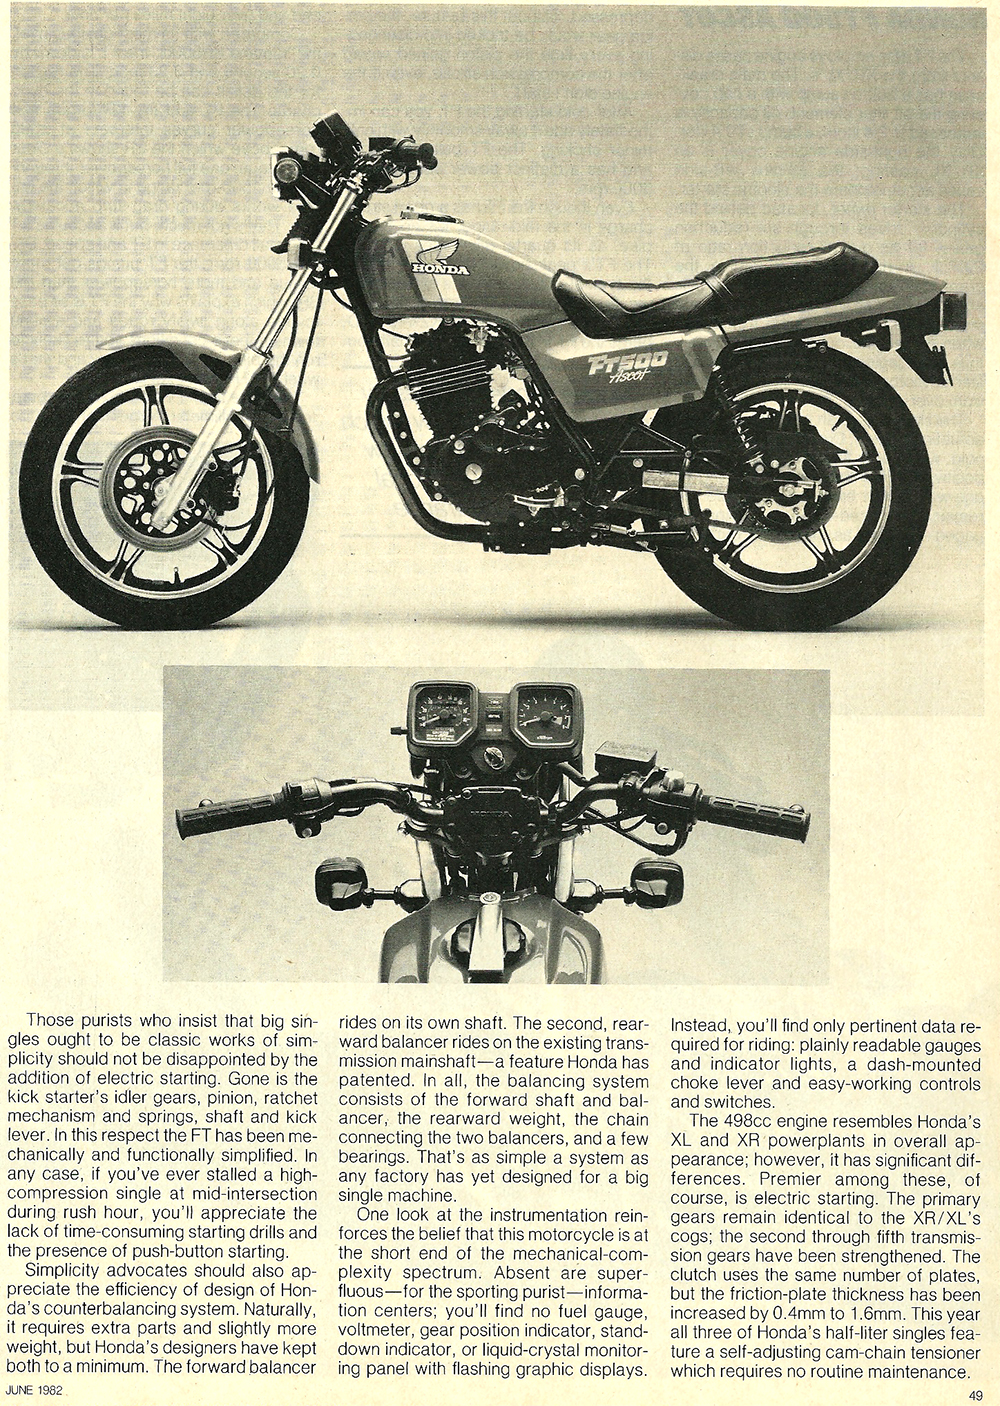 1982 Honda FT500 Ascot road test 2 04.jpg